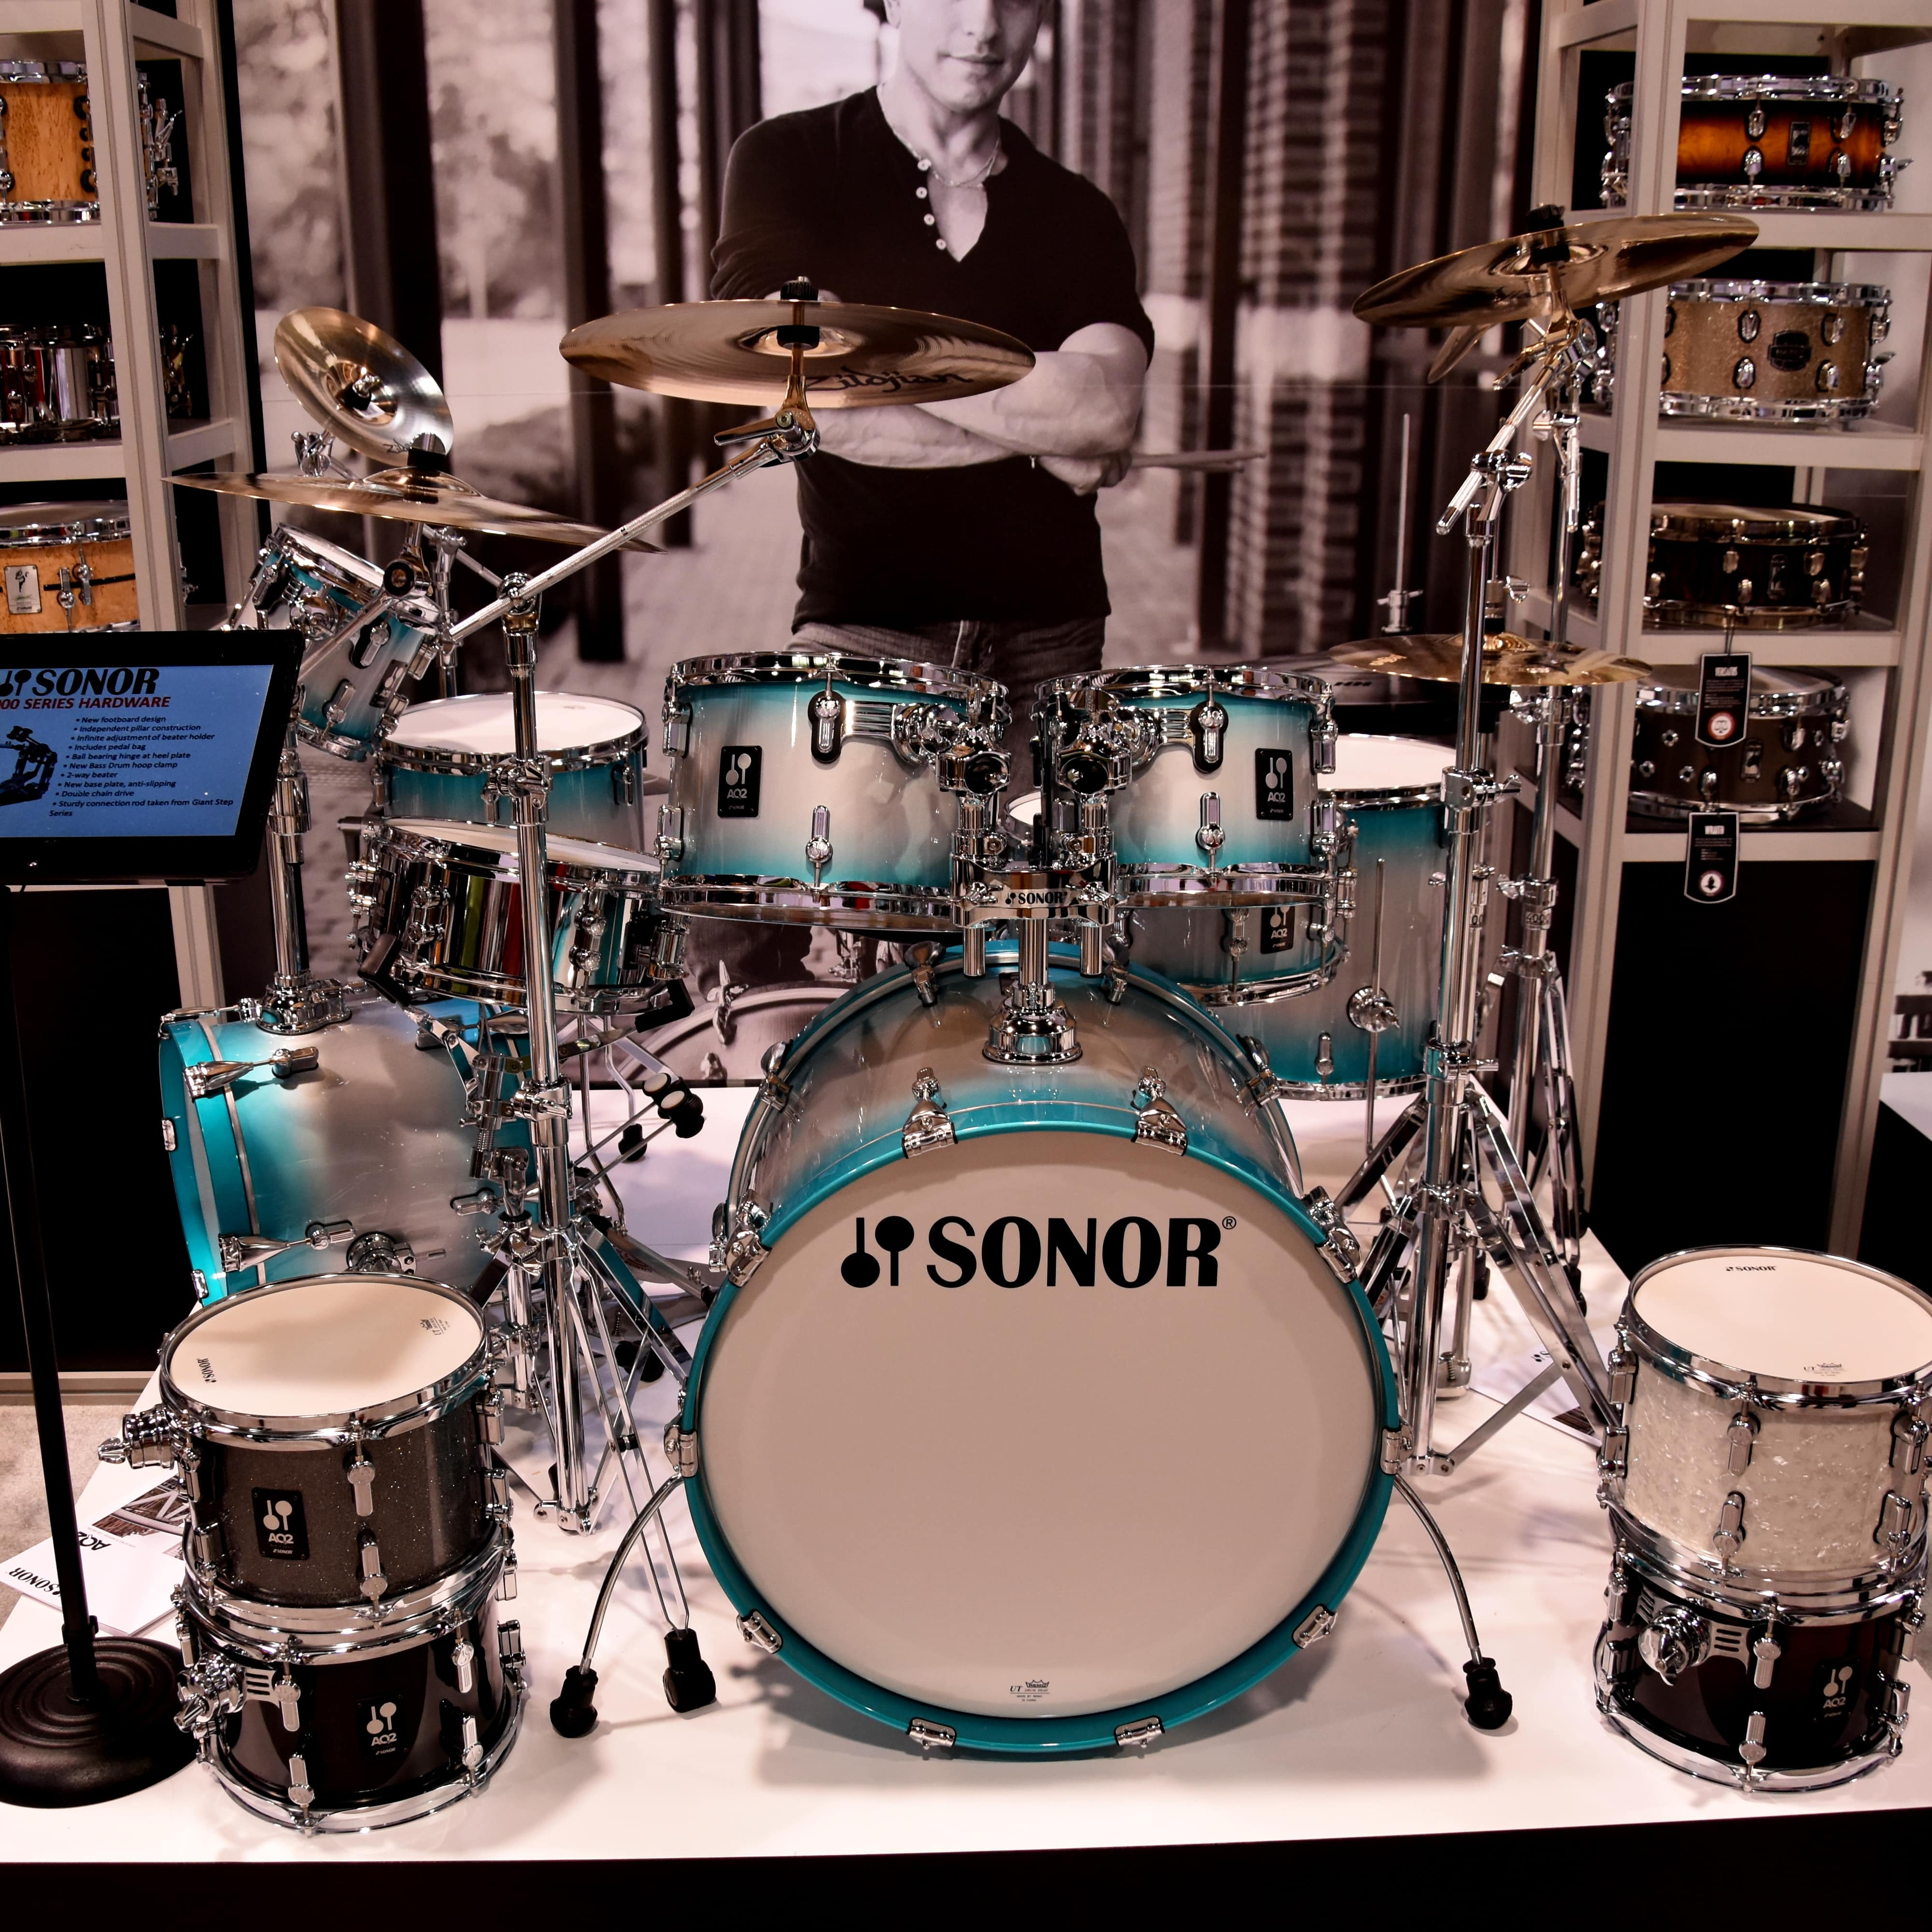 Sonor Booth at NAMM Show 2018